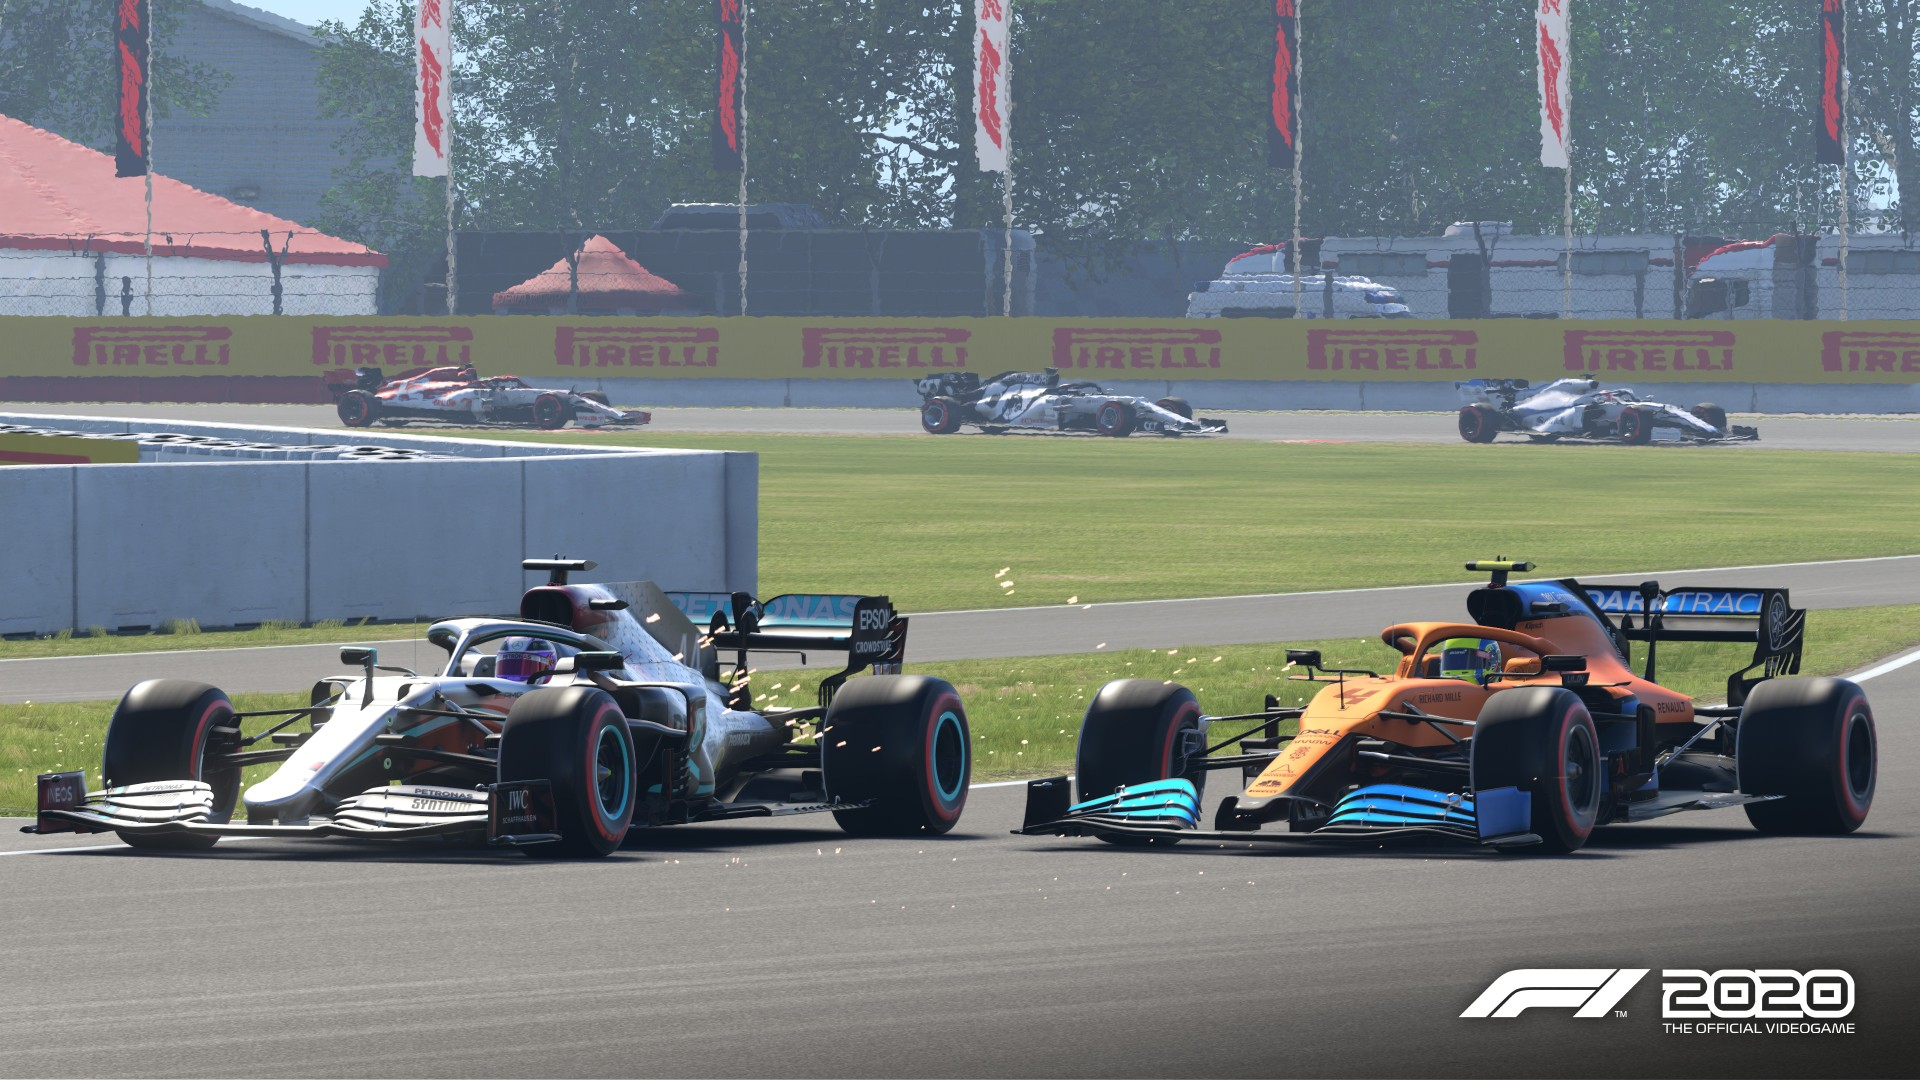 Let S Race Together F1 2020 Is Out Now For Xbox One Xbox Wire